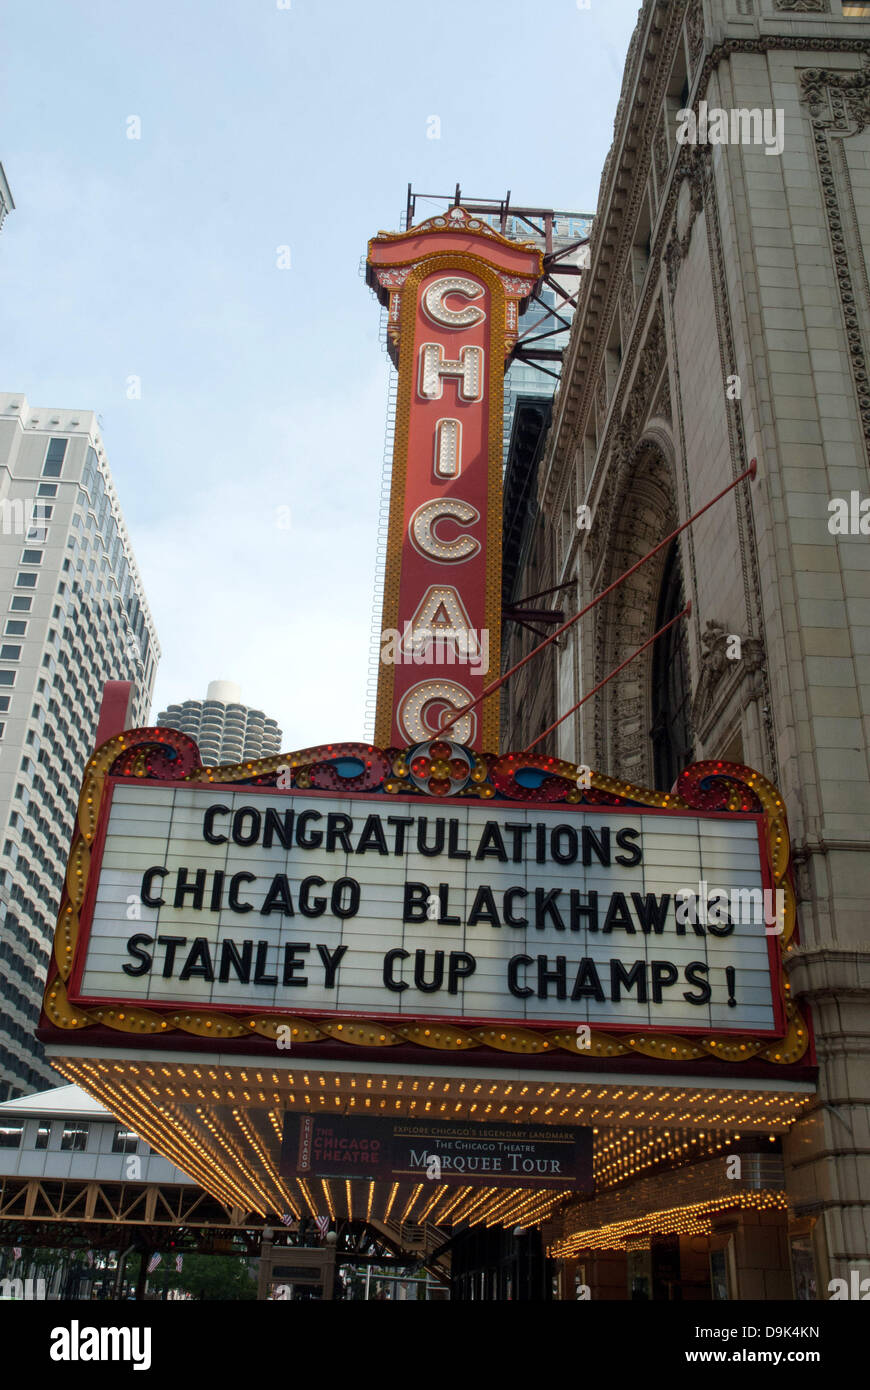 Jun 11, 2010 - Chicago, Illinois, U.S. - The Chicago Theater displays on its marquis congratulations to the Chicago Stock Photo